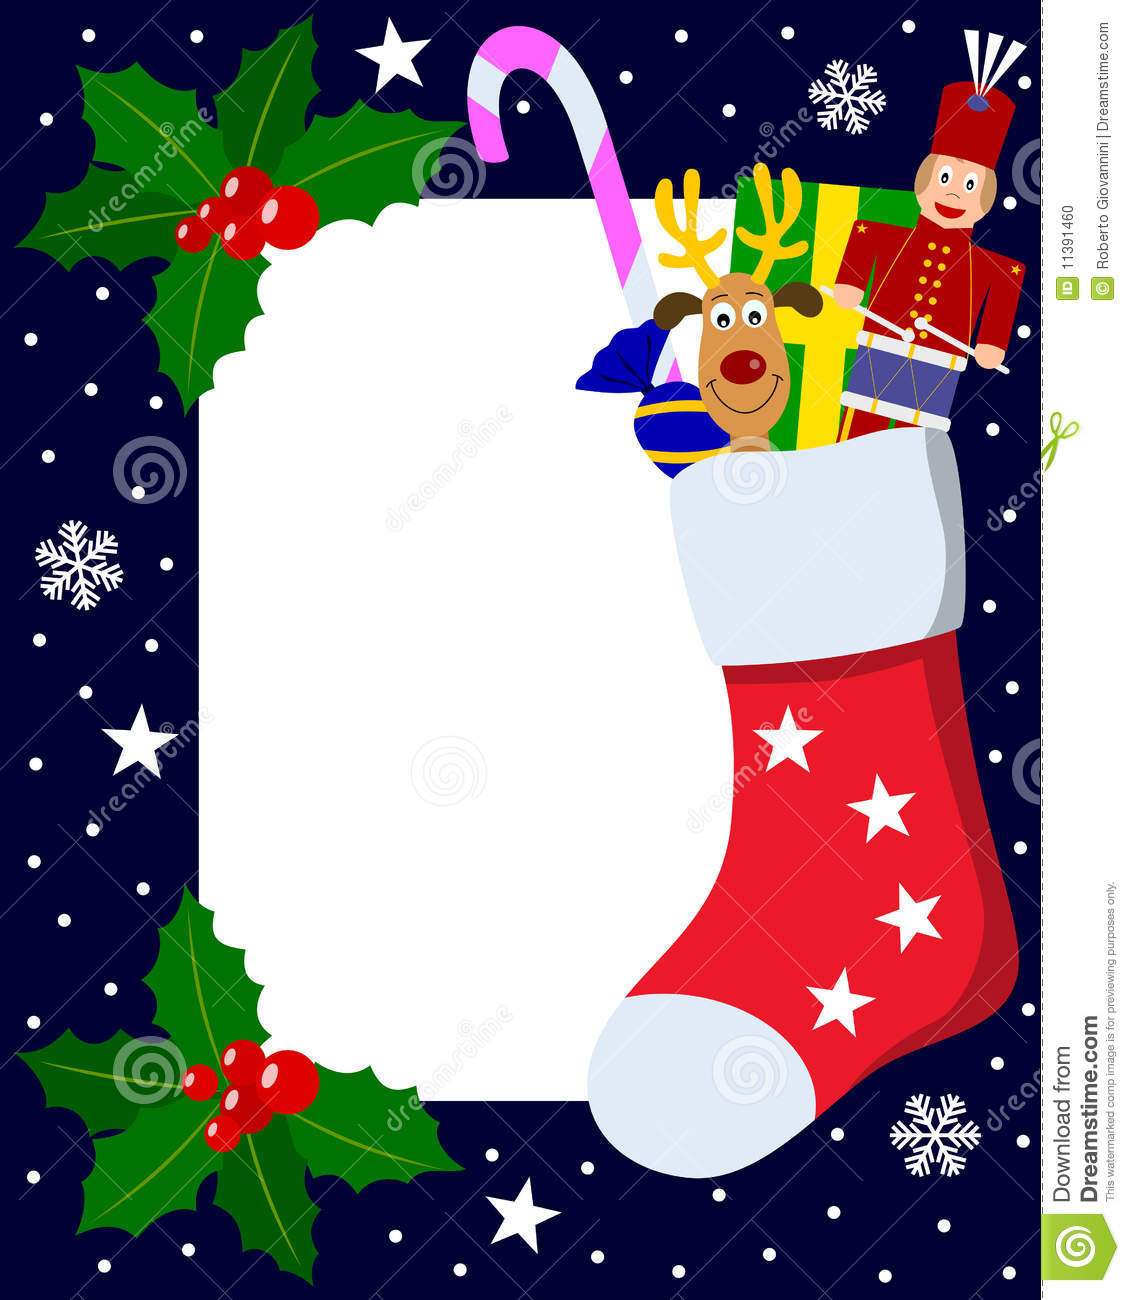 Photo Frame Christmas 6 Stock Vector Illustration Of